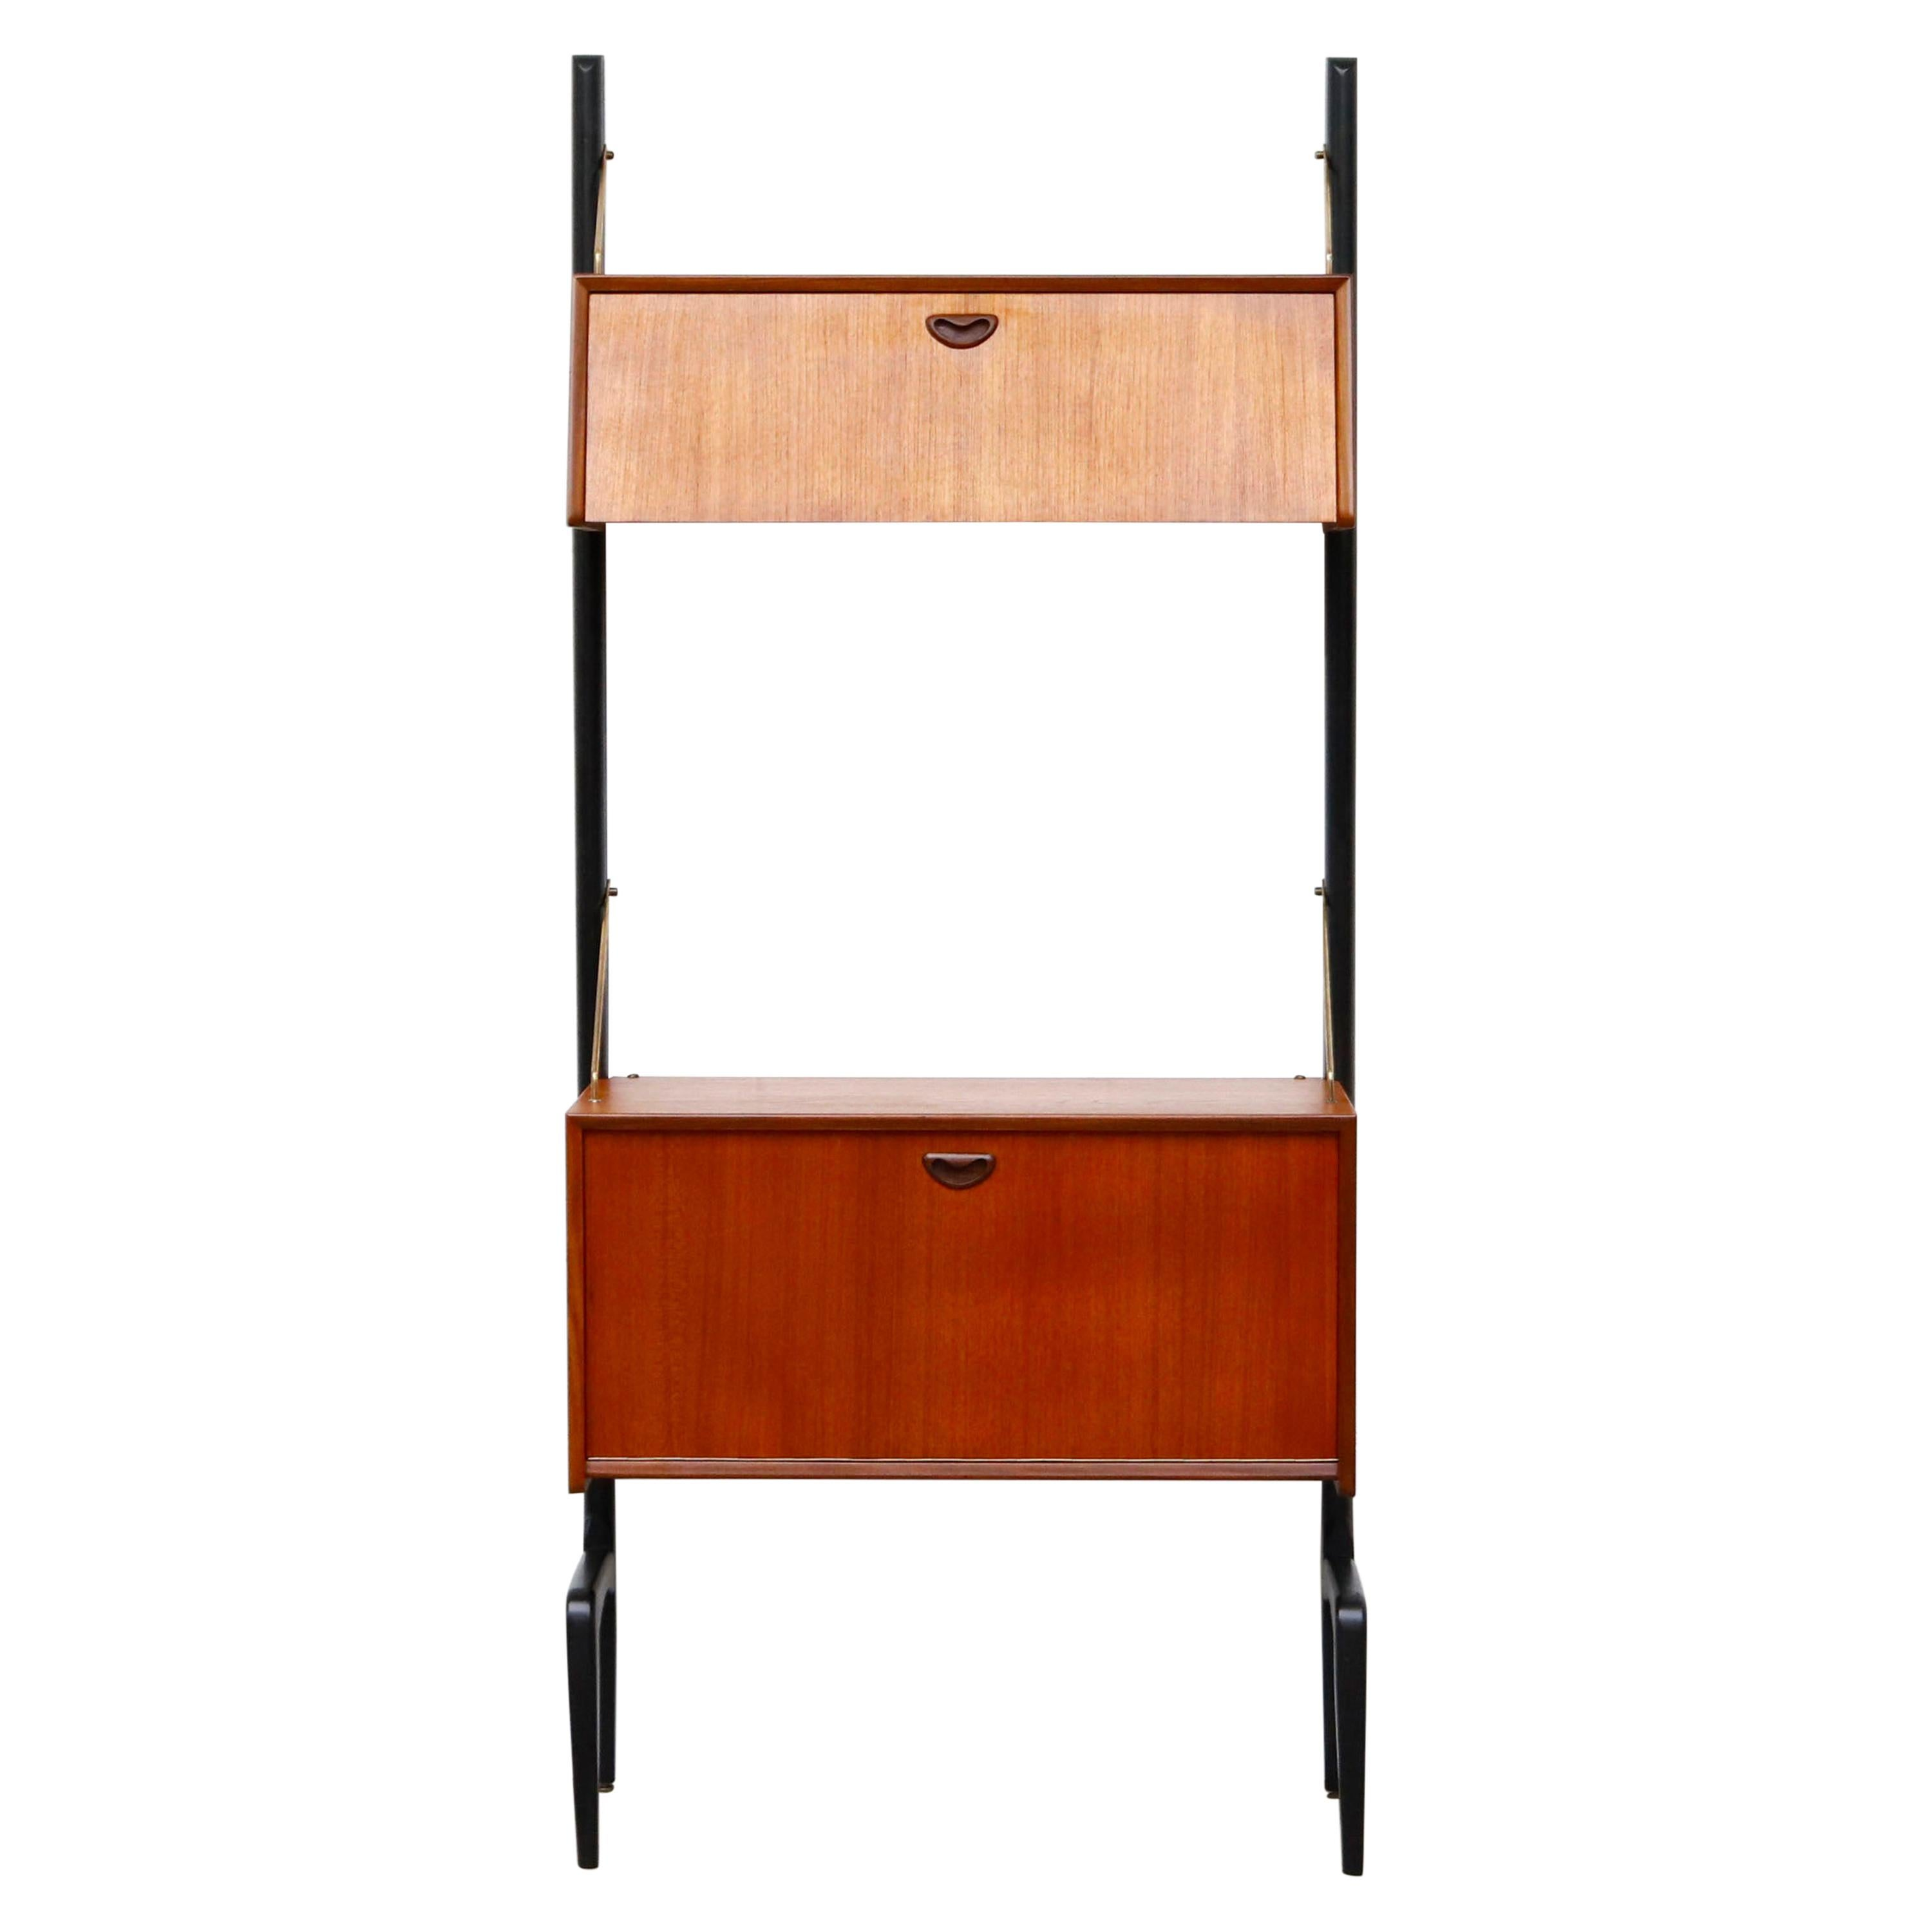 Single Section WeBe Shelving Unit with Cabinets by Louis Van Teeffelen